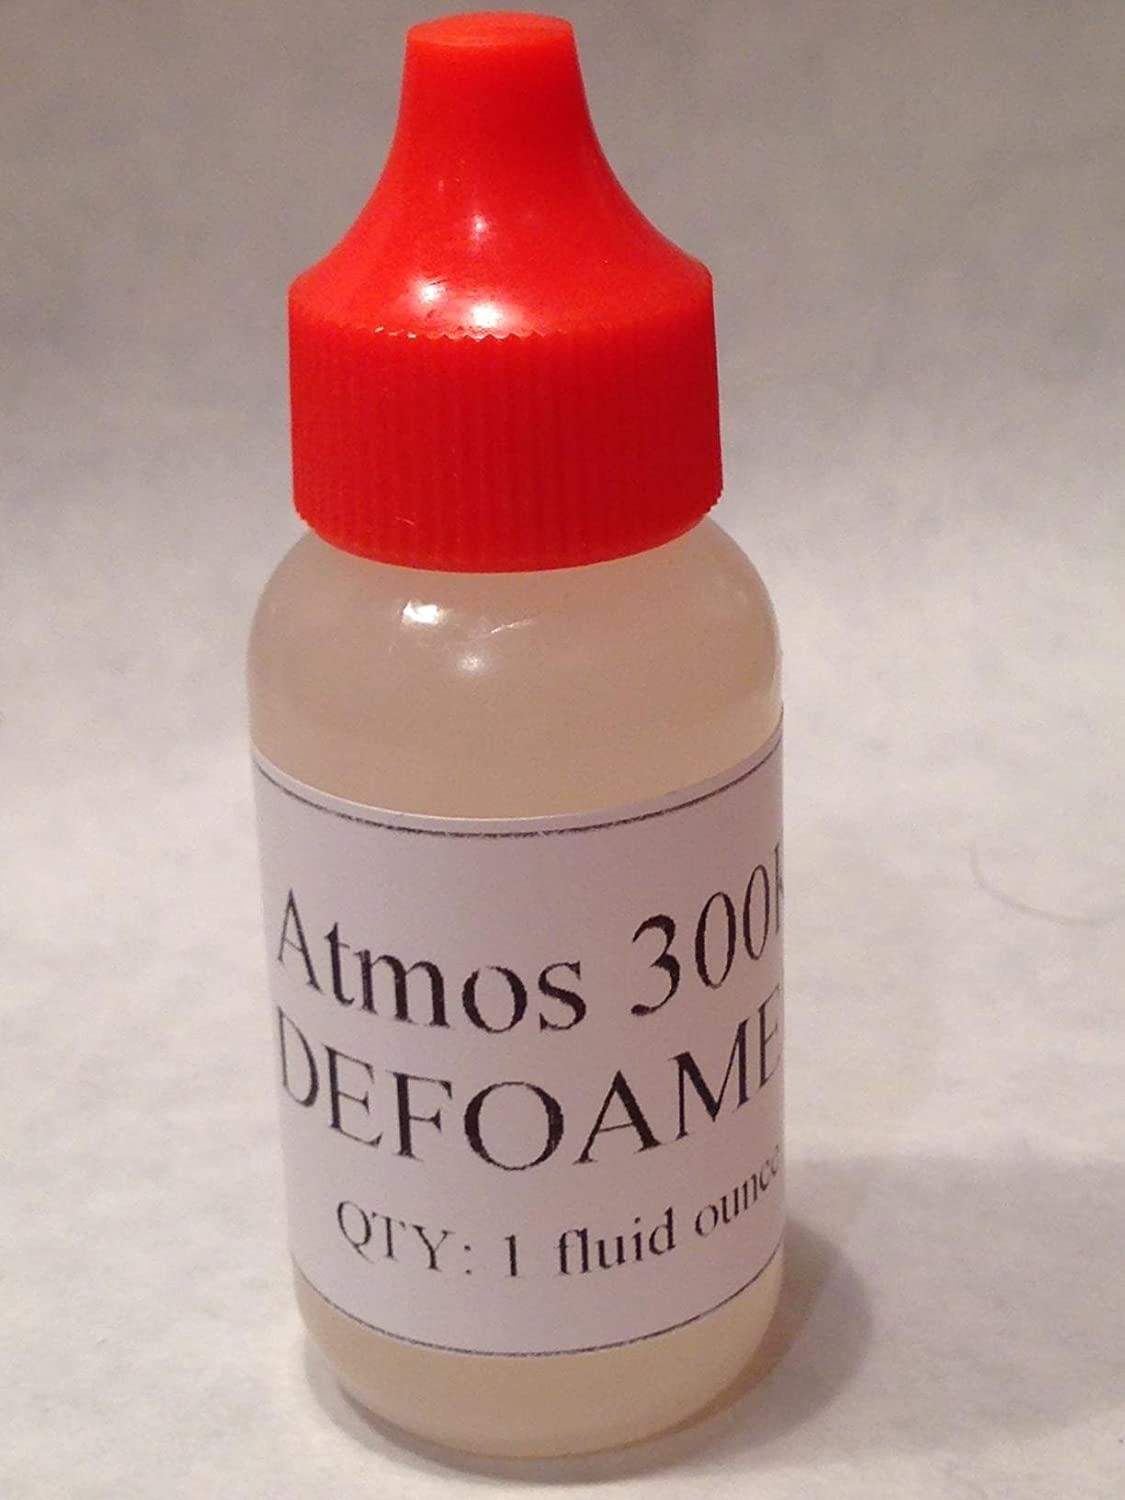 Liquid Defoamer, Atmos 300K, Food Grade, Kosher, Maple Syrup, brewing, and other applications.